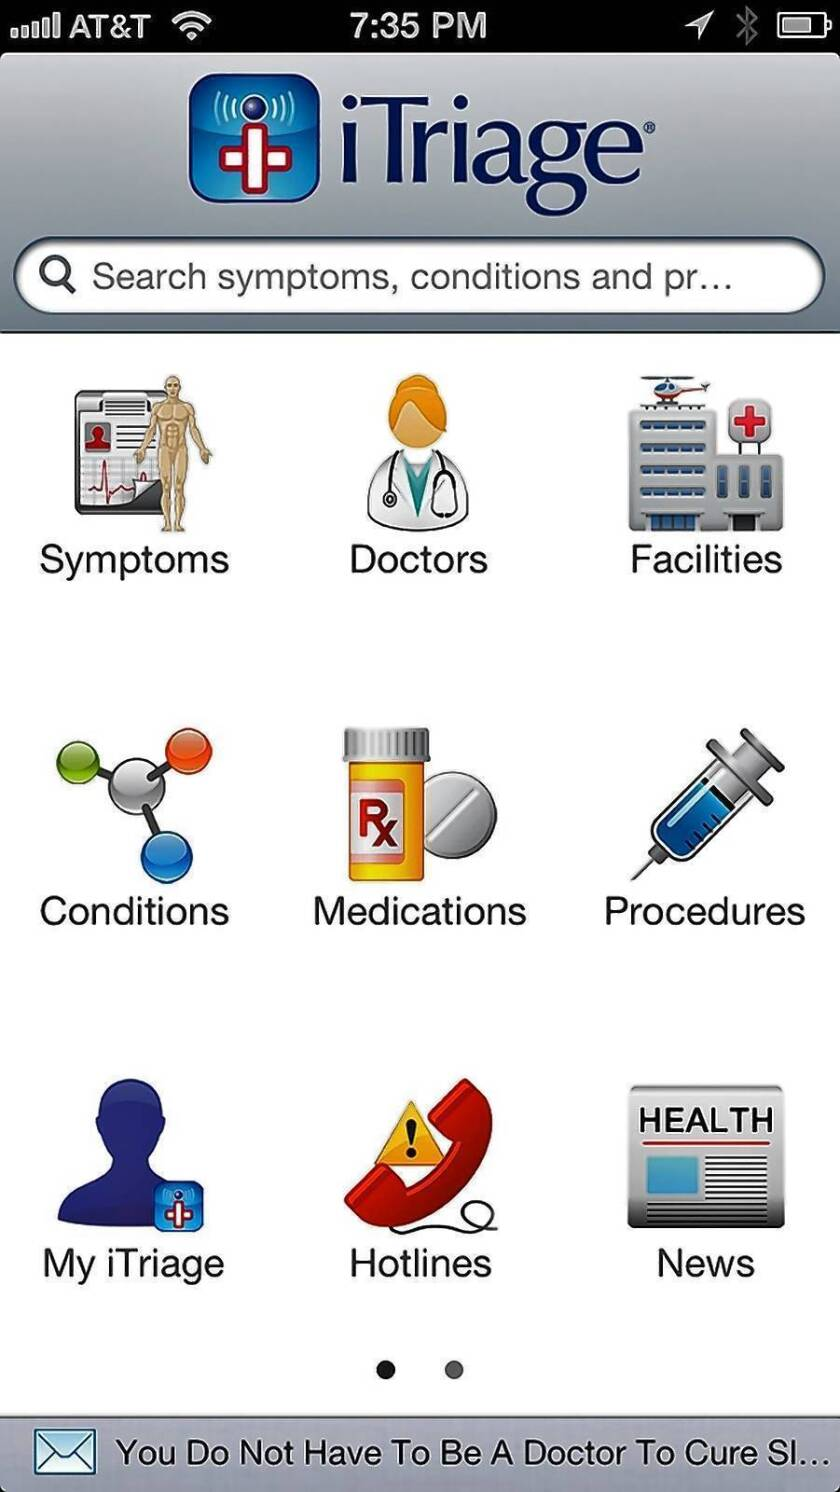 Medical apps such as iTriage offer advice on symptoms, drugs and more.